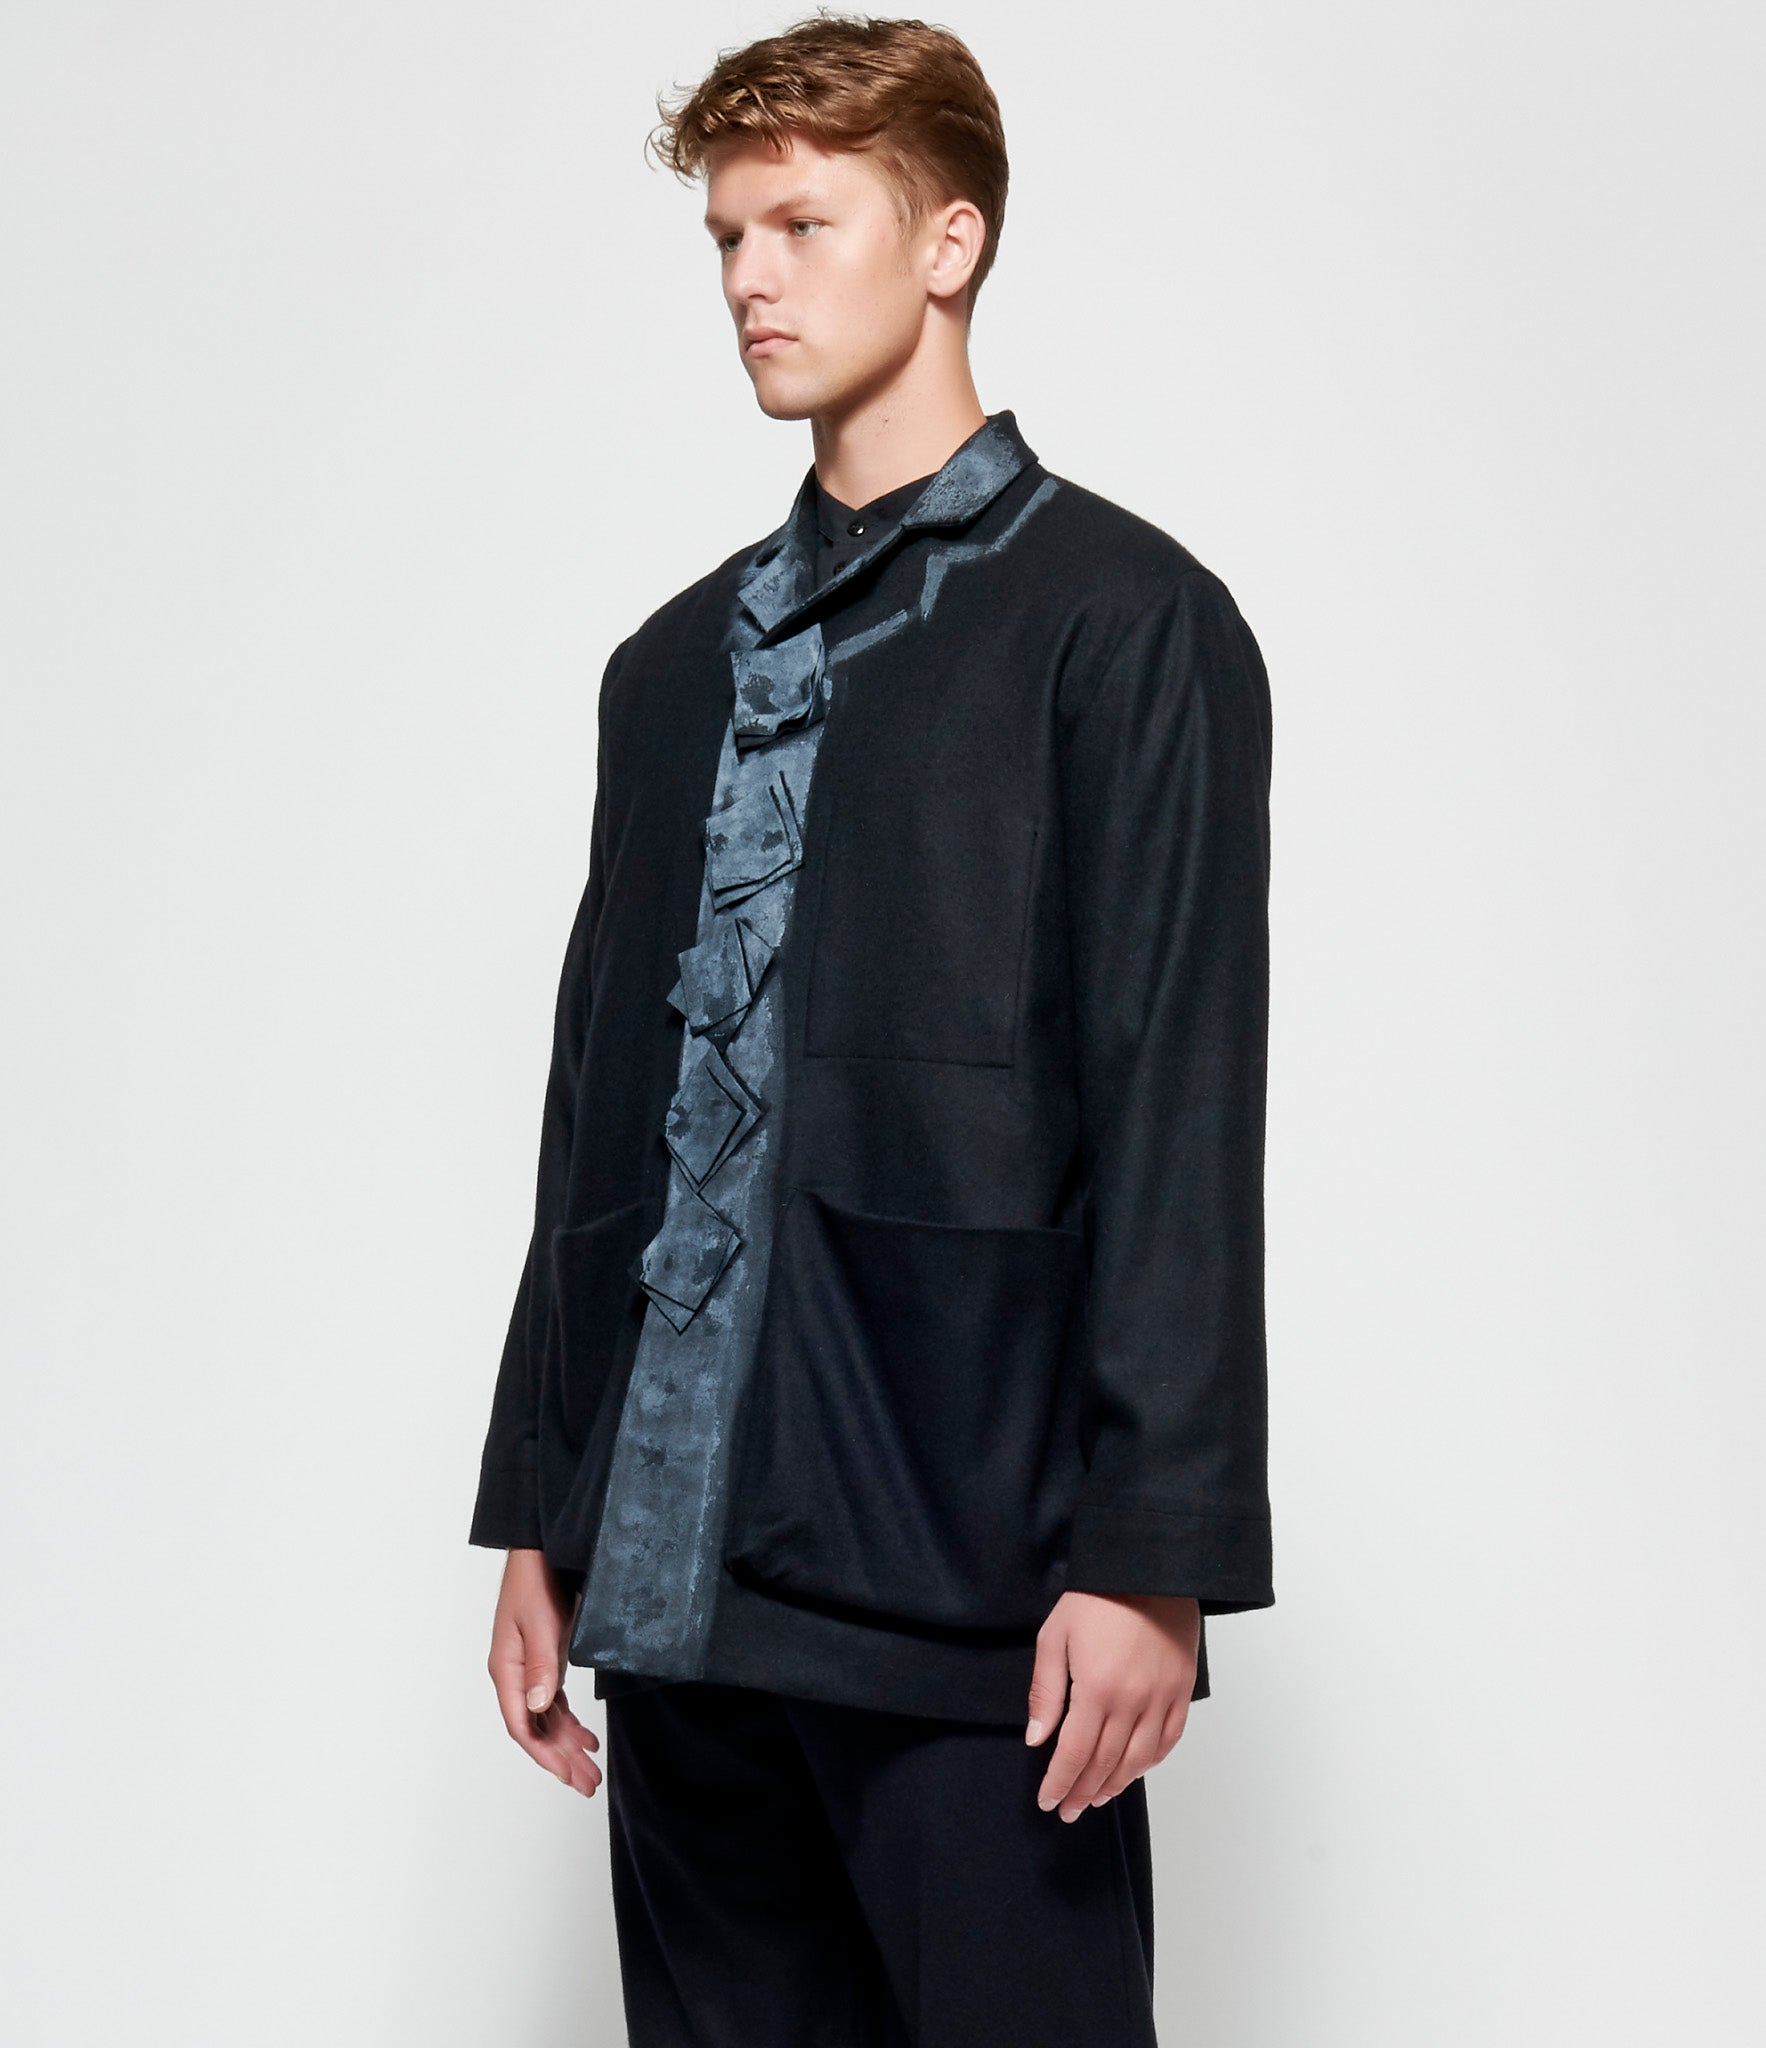 Toogood Limited Edition Hand Cut Photographer Jacket